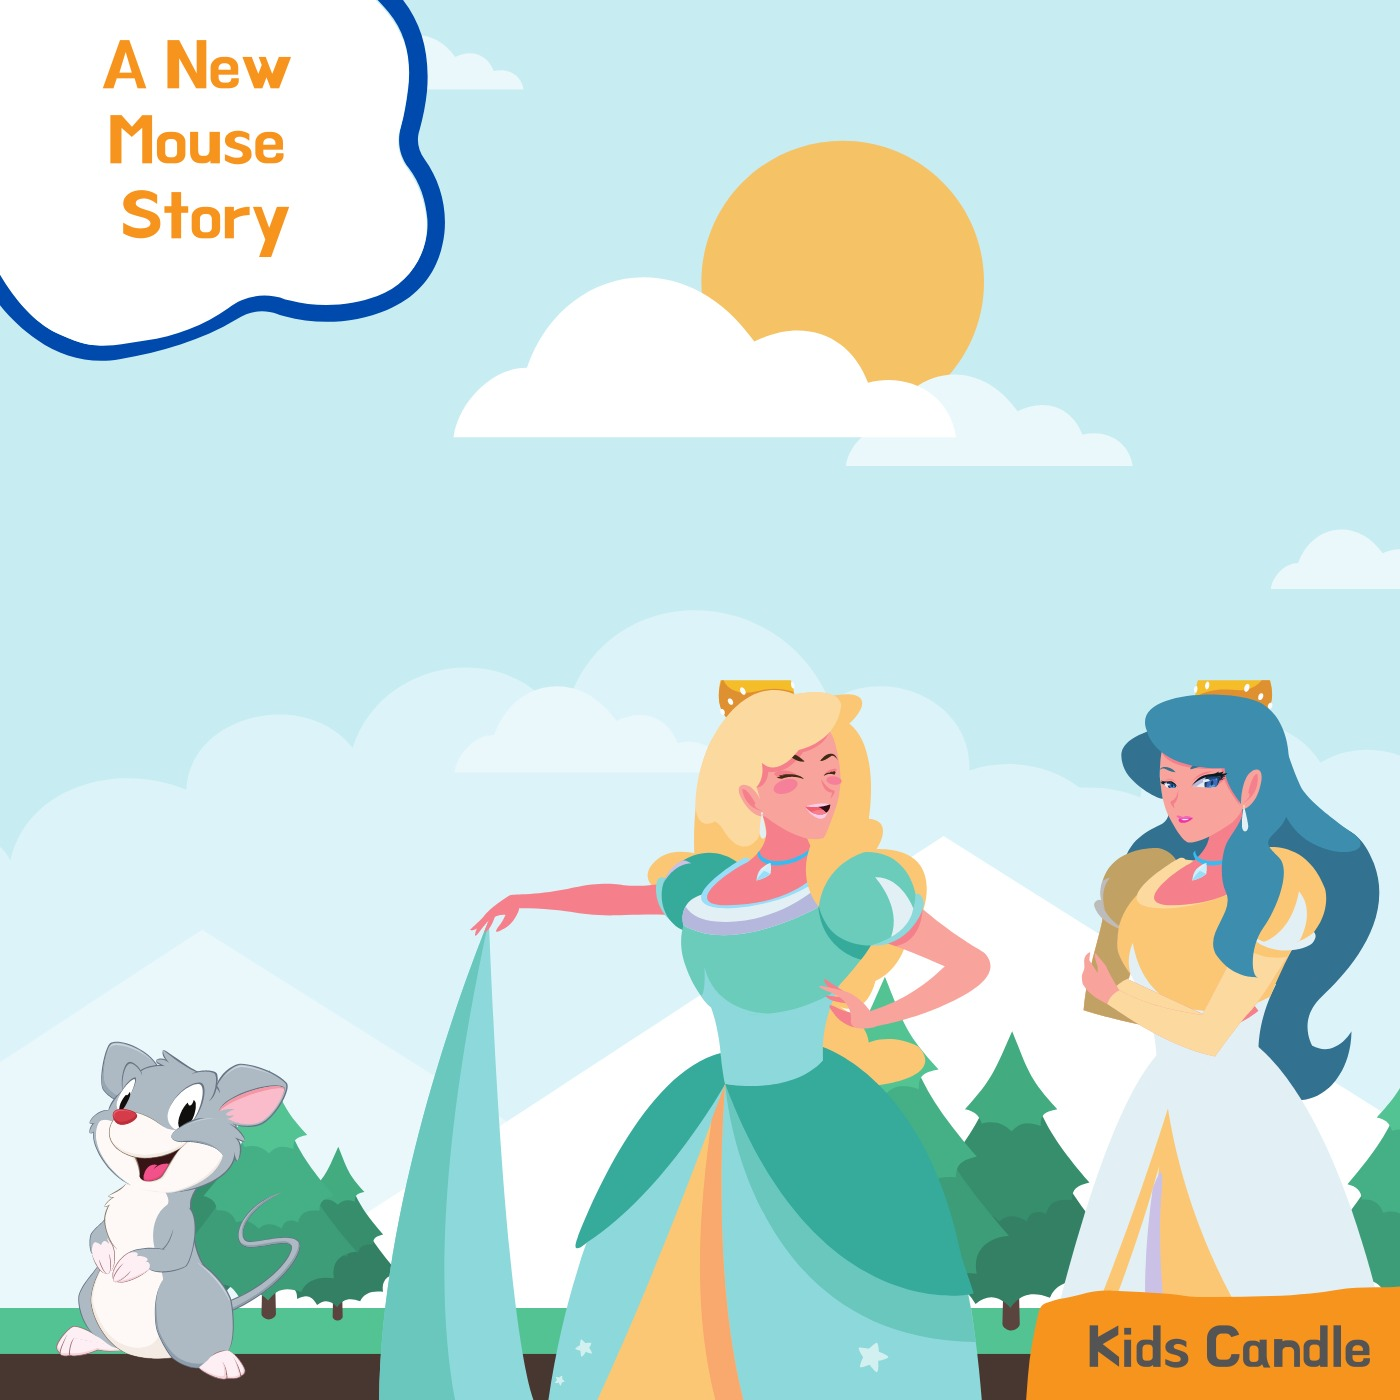 Cindrella: A New Mouse Story